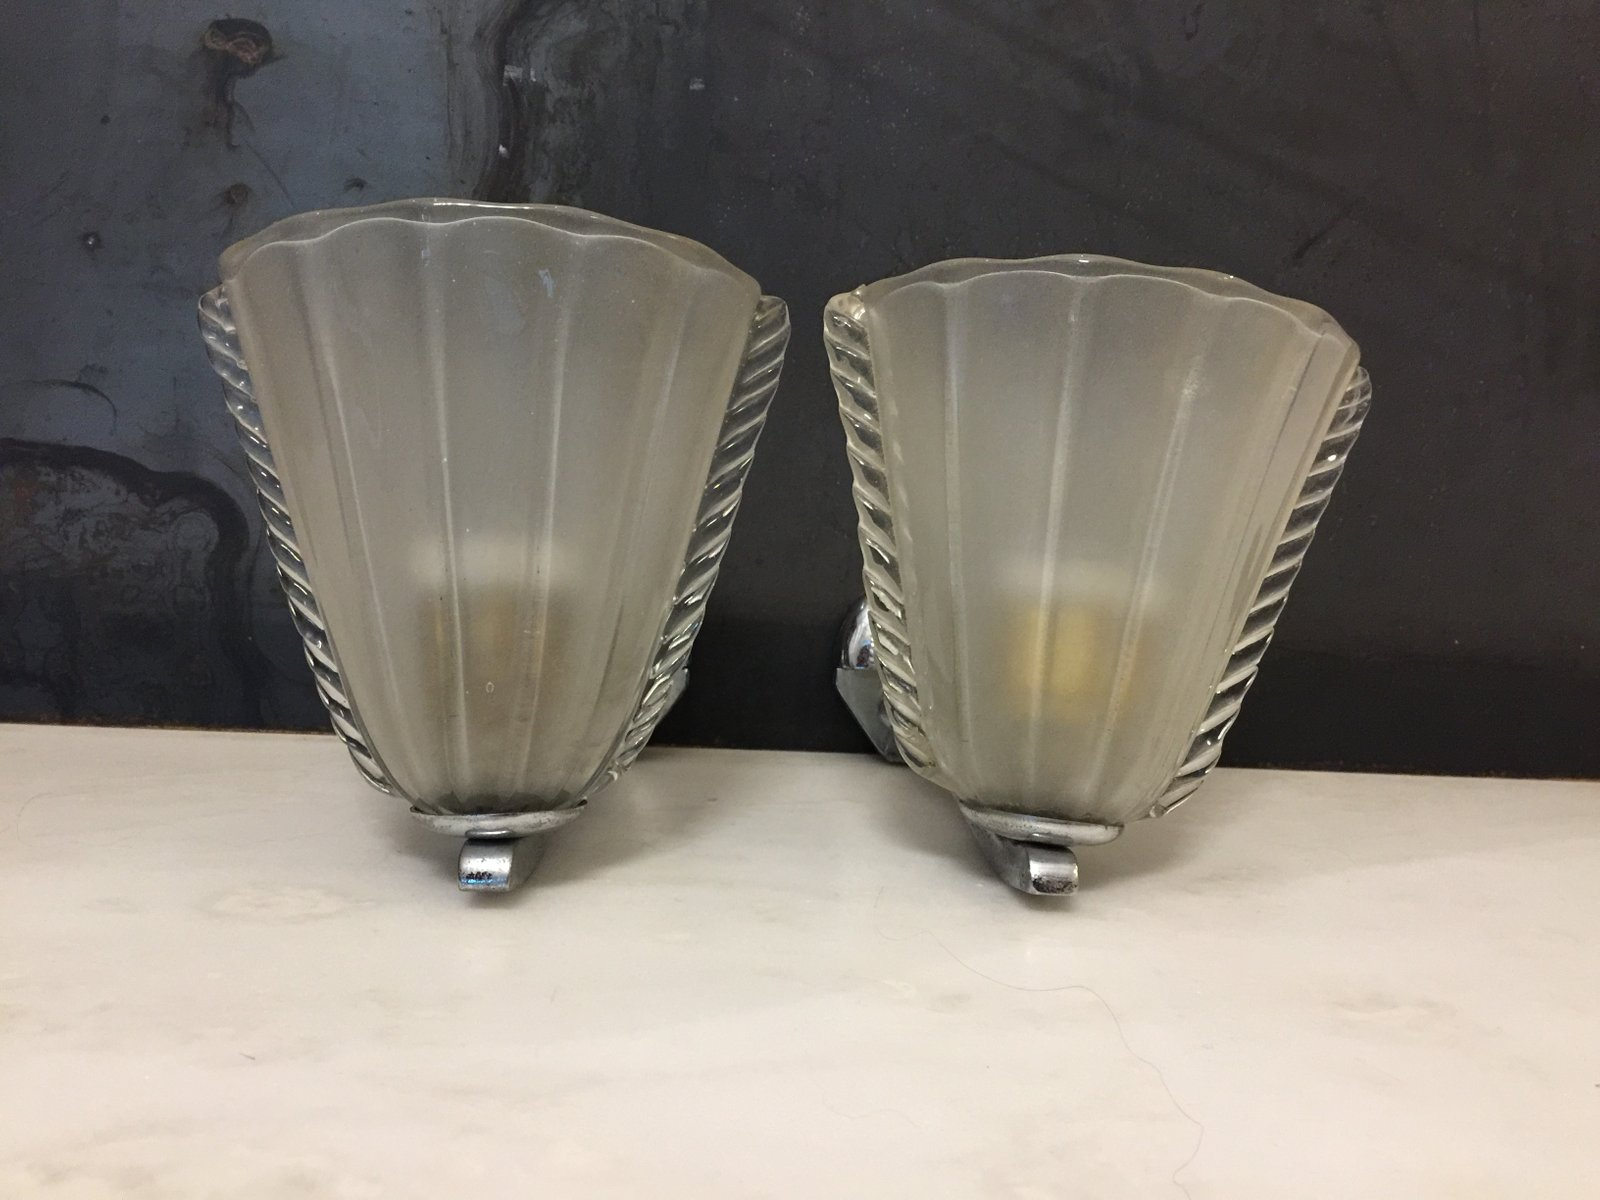 Italian Art Deco Wall Sconces from Venini Set of 2 for sale at Pamono